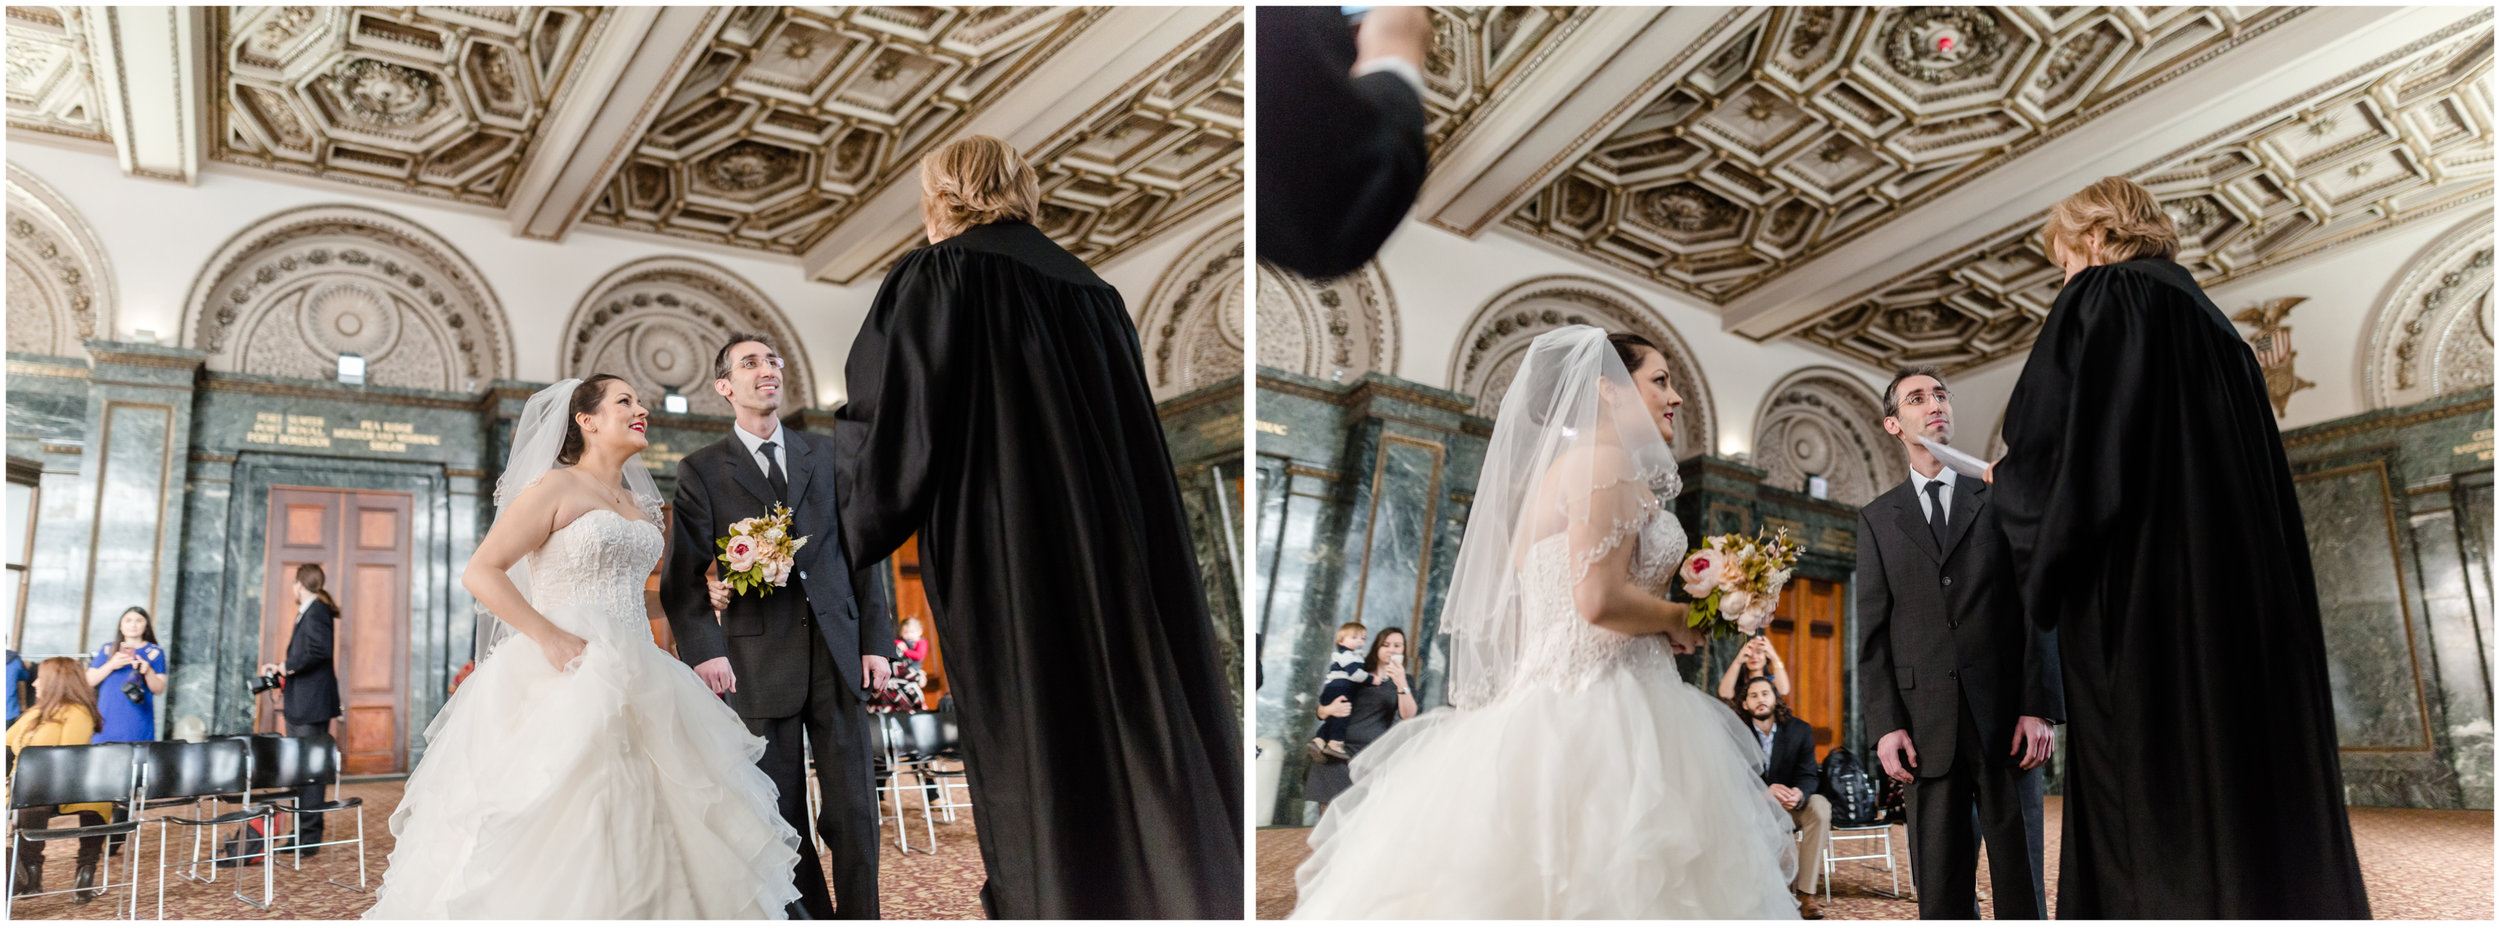 chicago cultural center elopement wedding city hall marriage jenny grimm photography